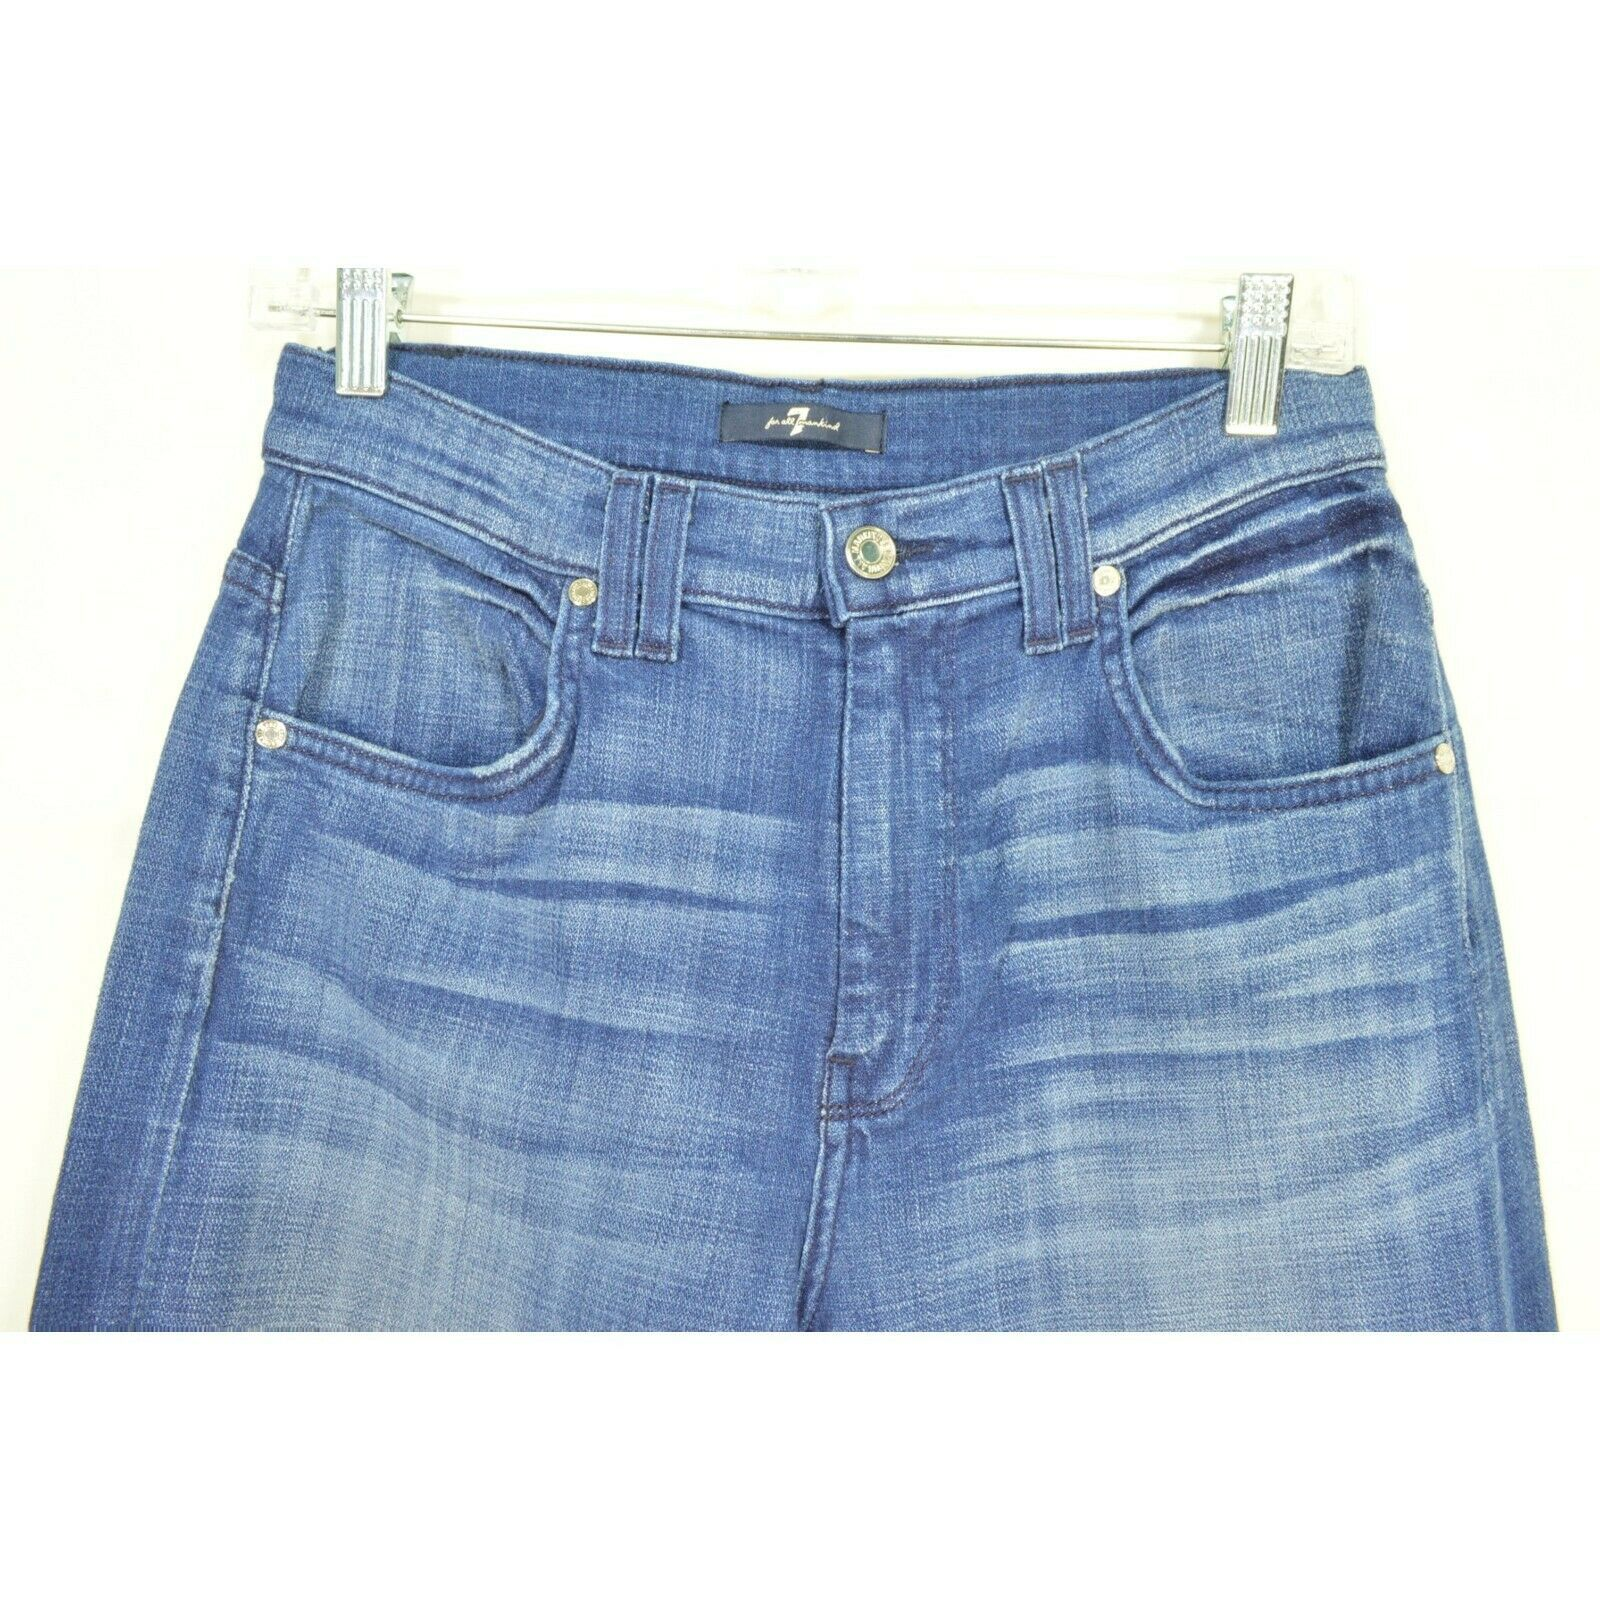 7 For All Mankind jeans cropped 29 x 24 NWT raw hem USA image 10